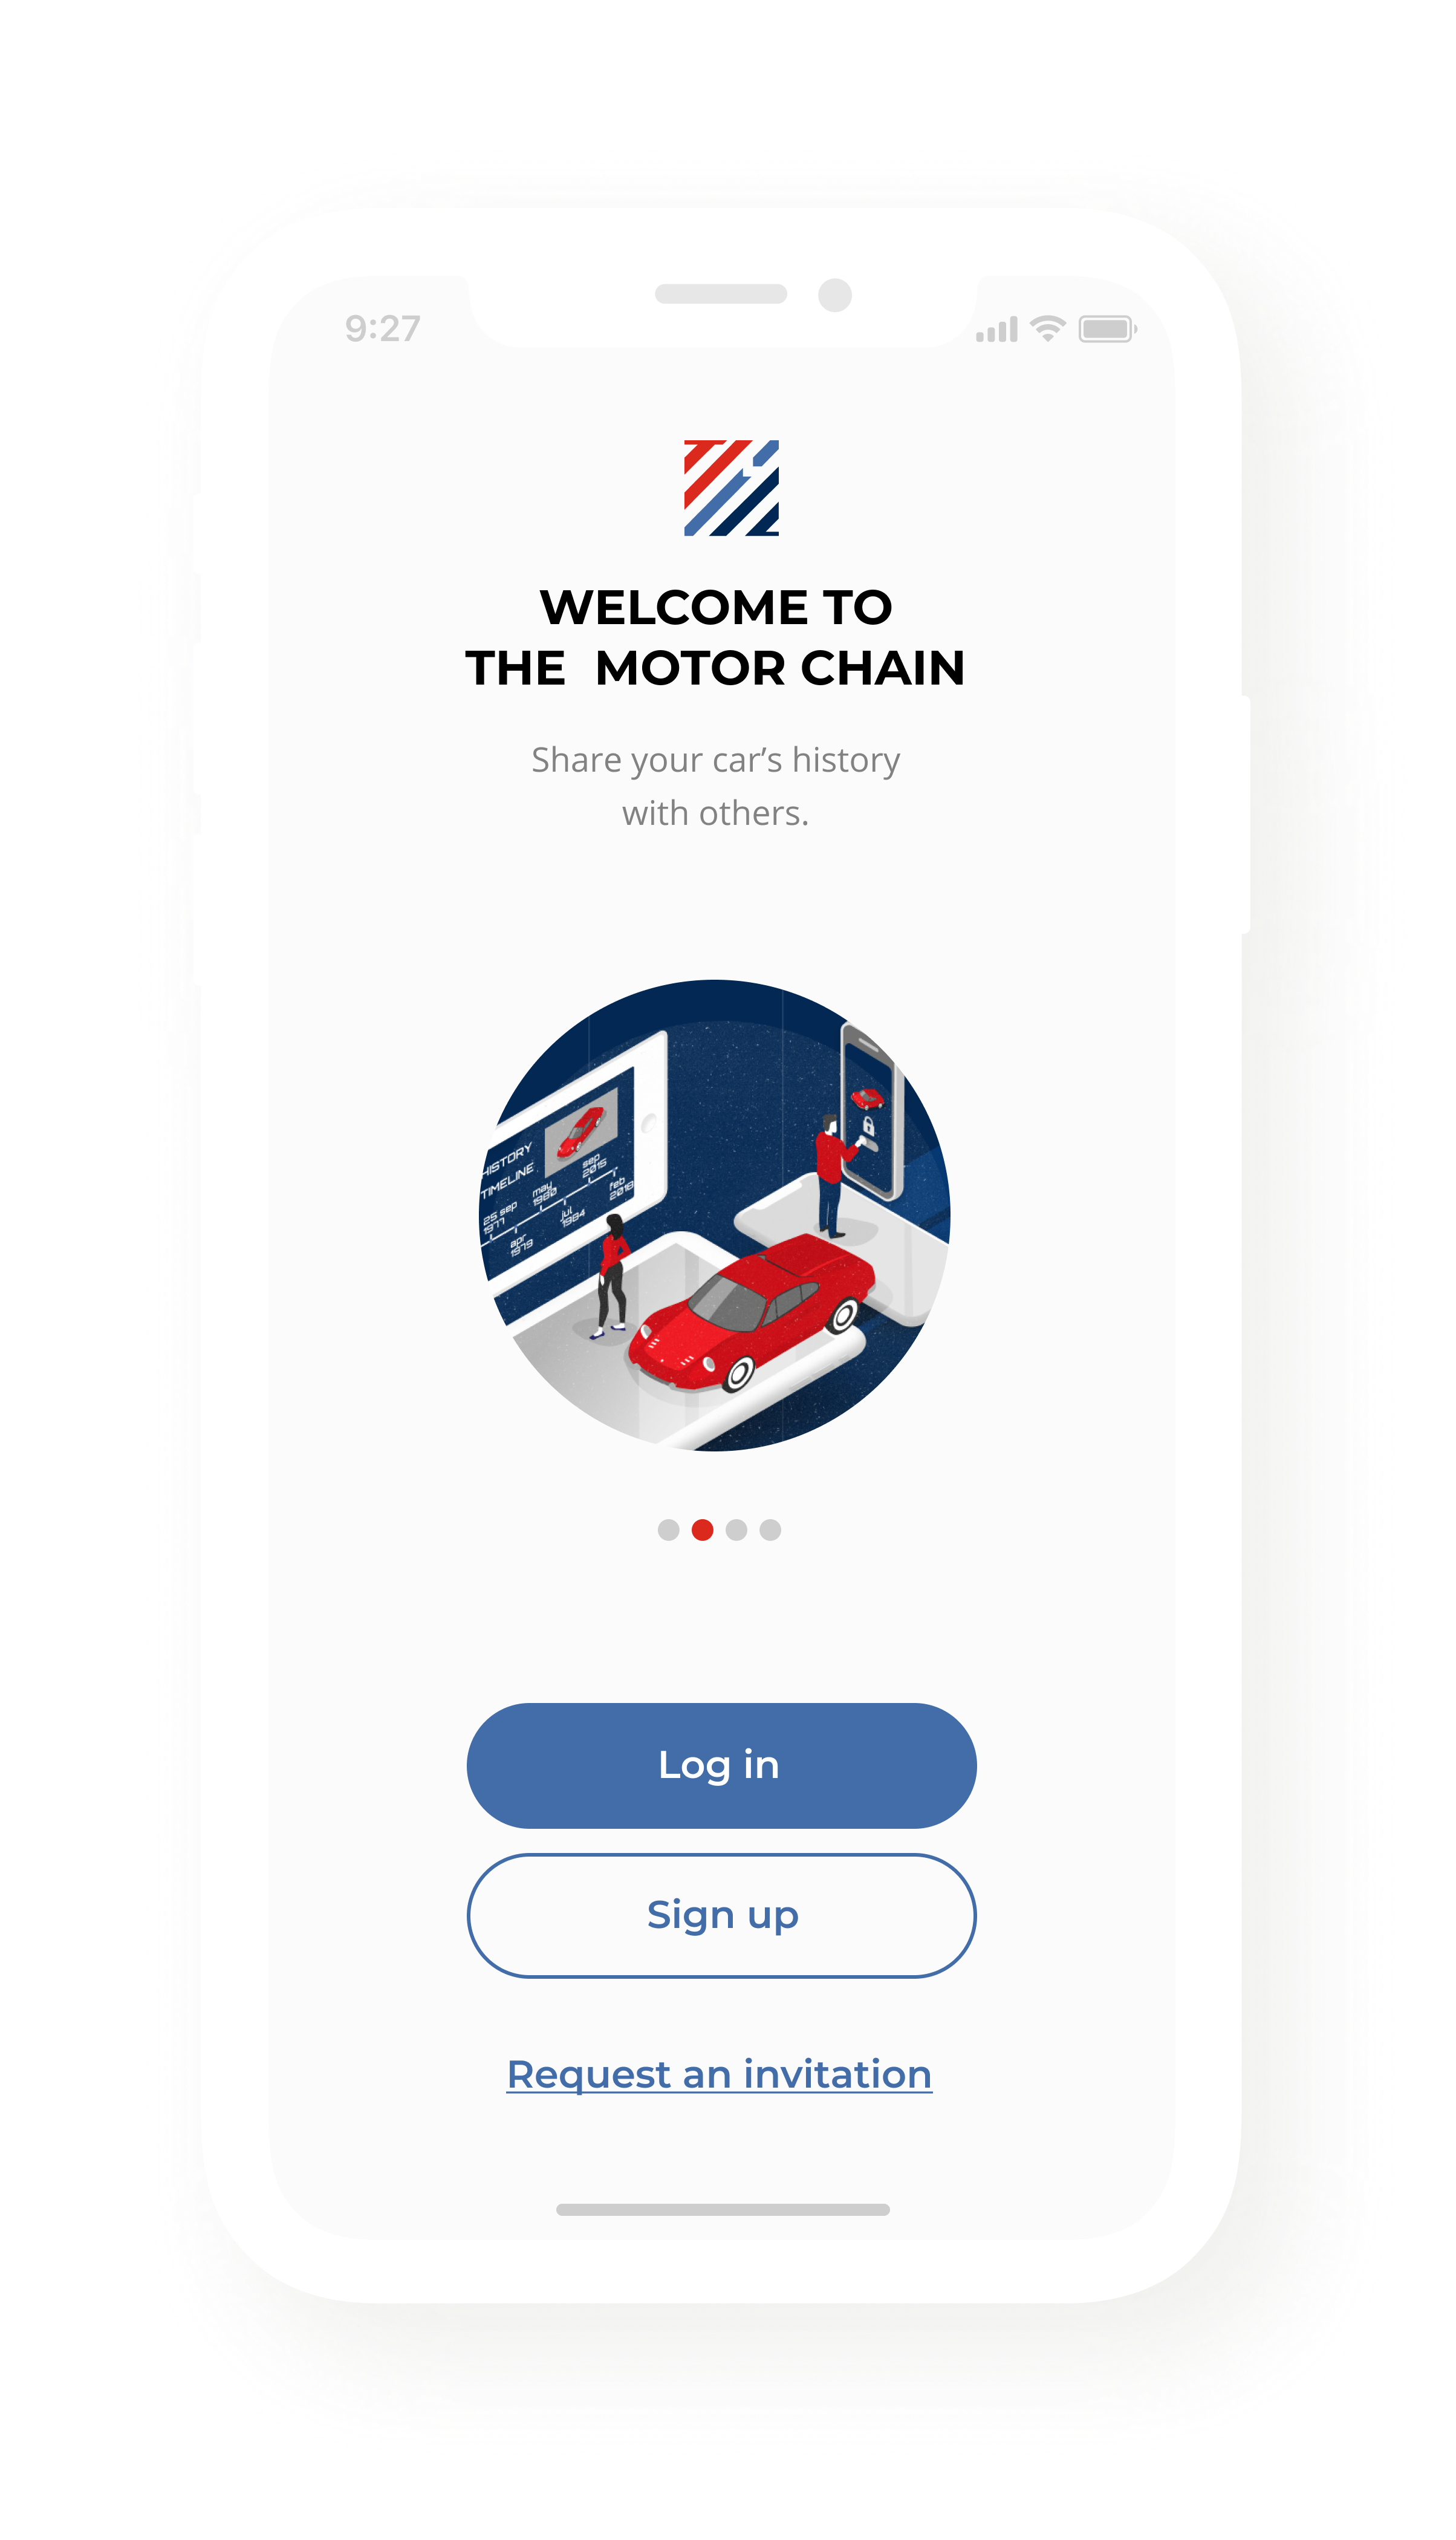 Our clients_Startup The motor chain Detailed view of a mobile application screen_Onboarding process